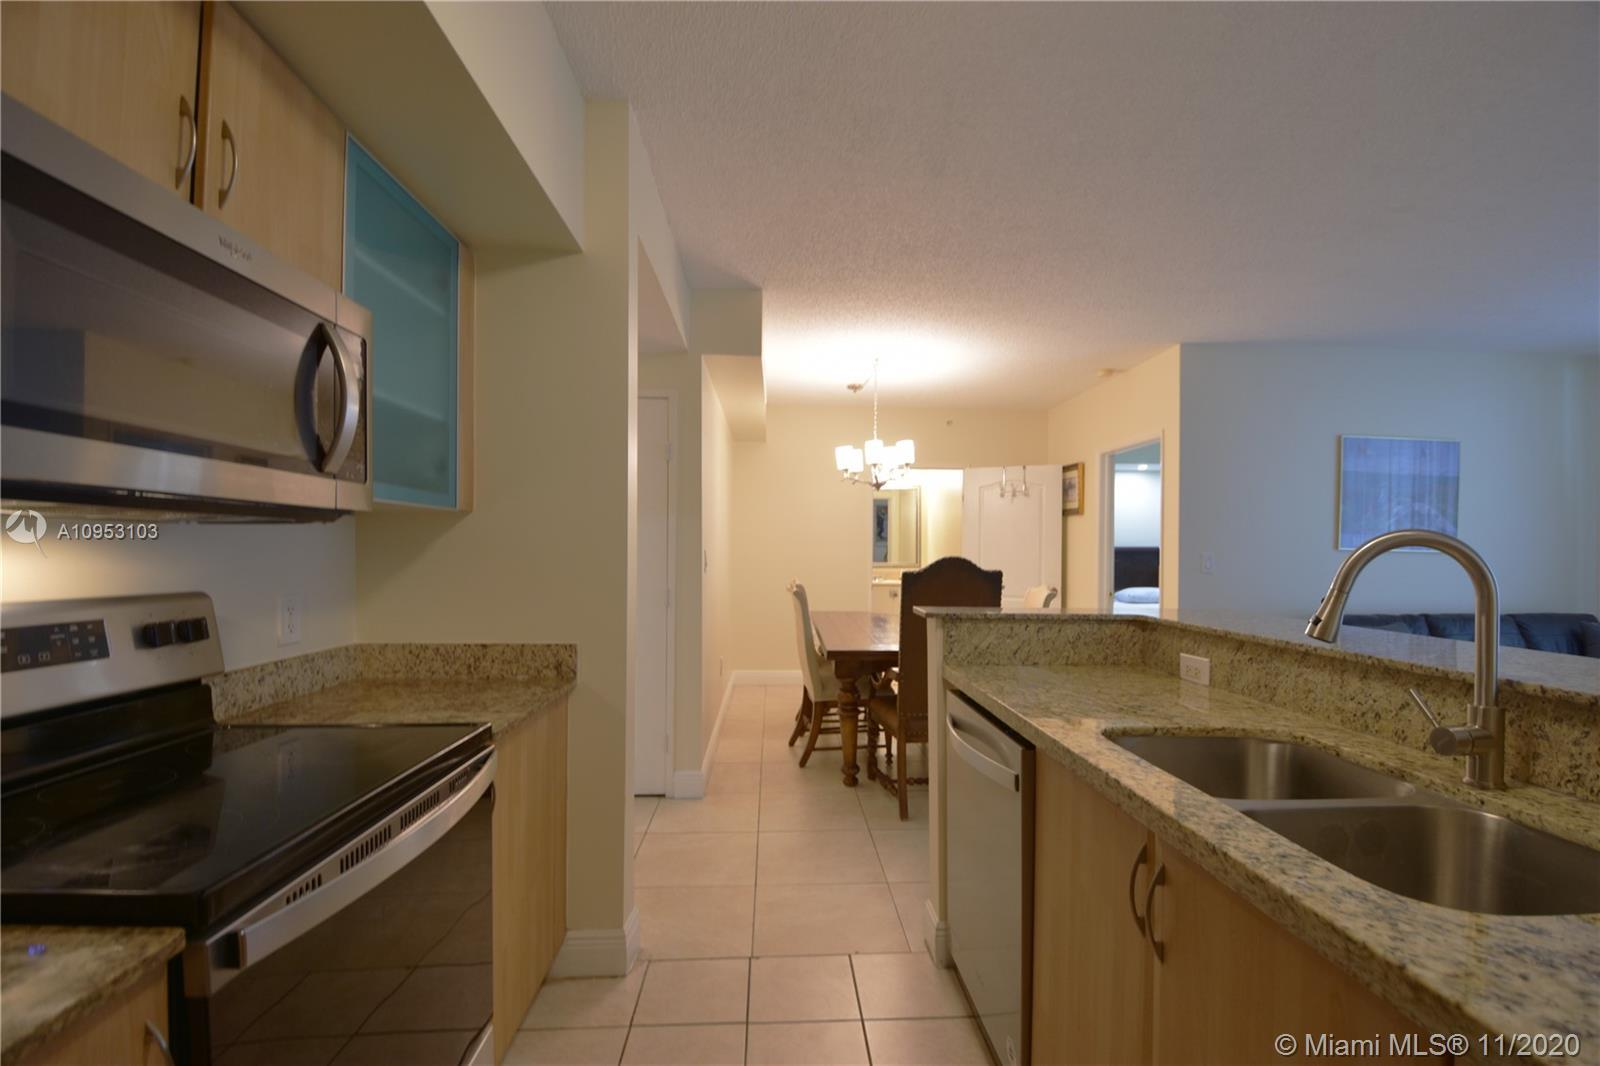 LOCATION LOCATION LOCATION.  DON'T MISS THIS 2 BEDROOM 2 BATH + DEN IN SUNNY ISLES BEACH AT THE HIGH